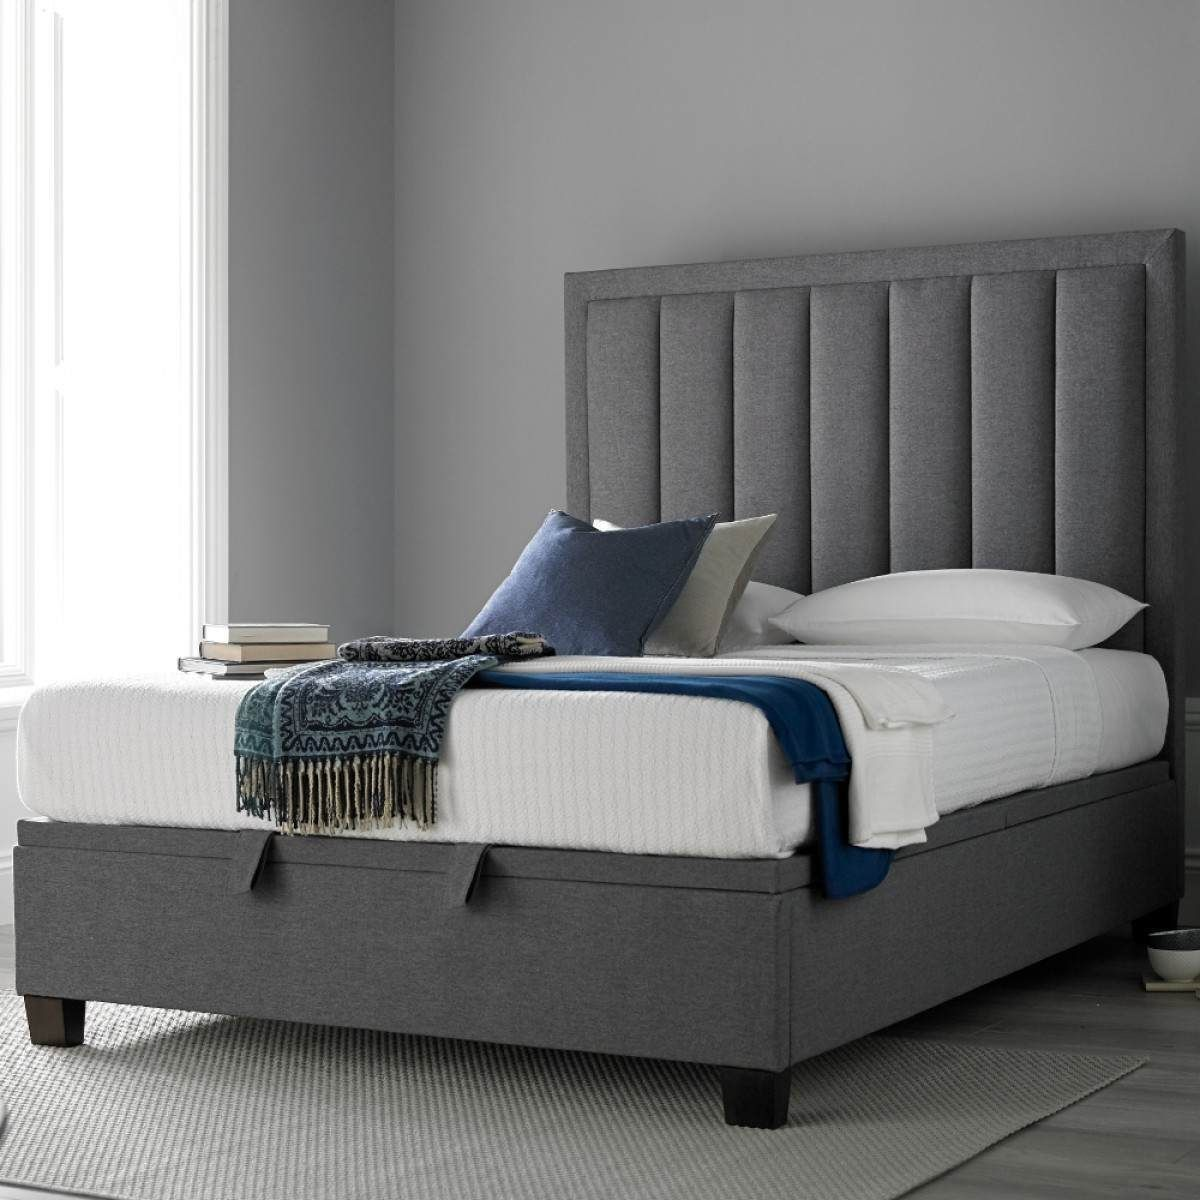 Prime Ventura Grey Fabric Ottoman Storage Bed For The Home Ocoug Best Dining Table And Chair Ideas Images Ocougorg